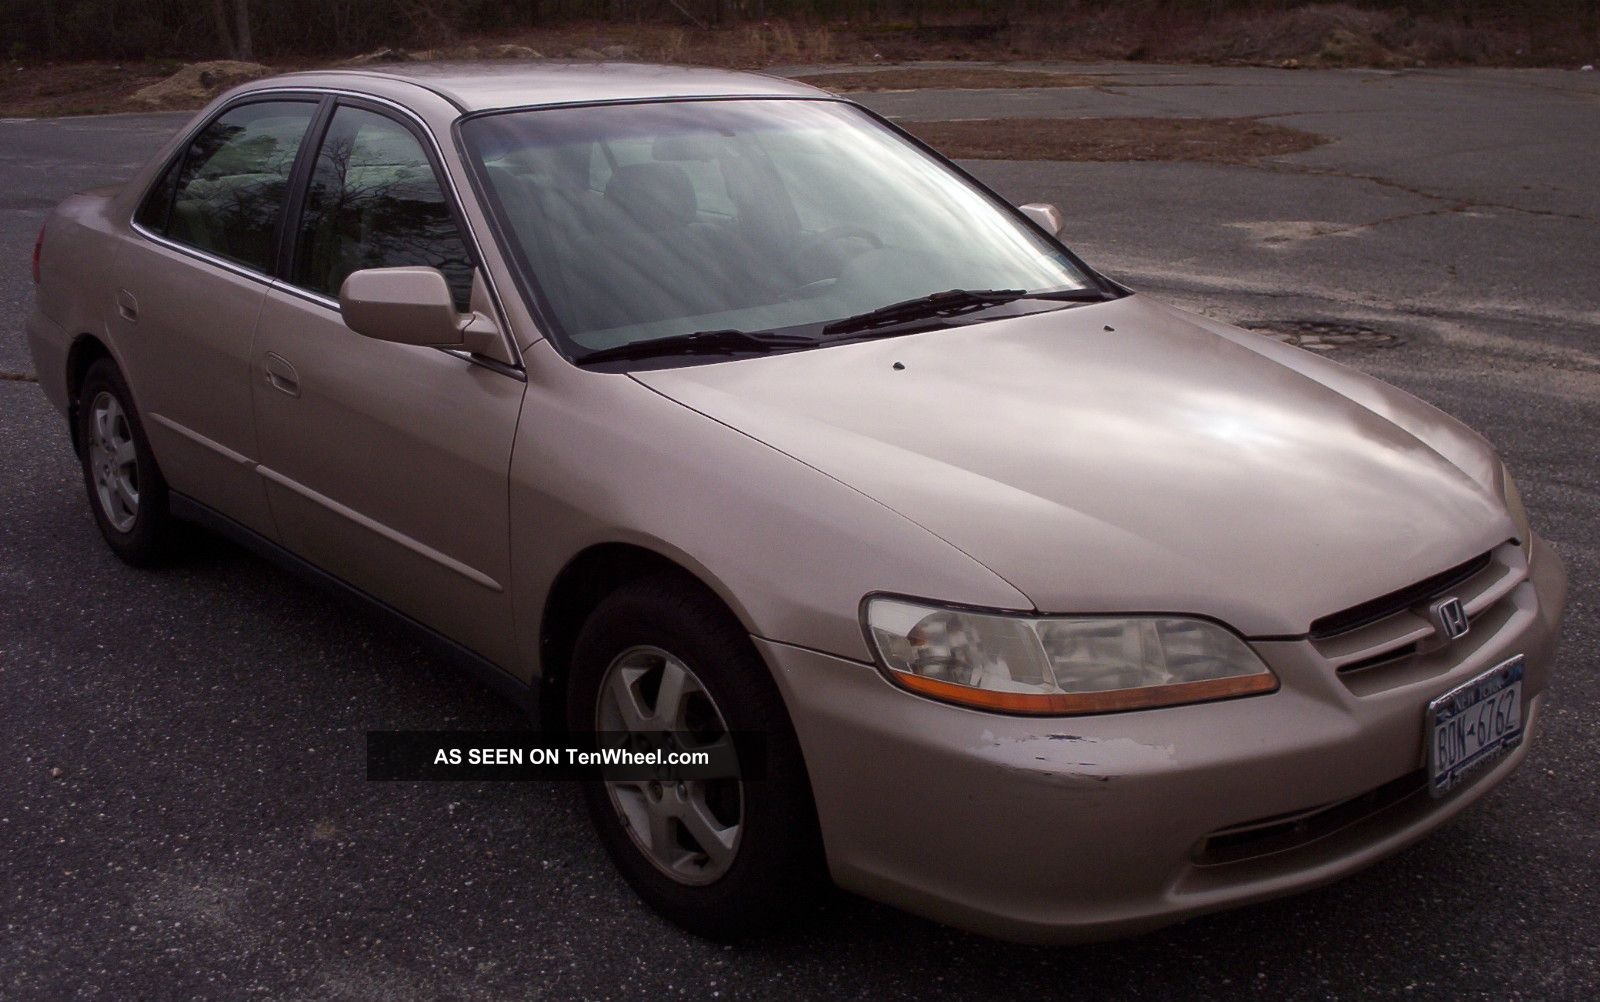 2000 honda accord se 4 door auto for 2000 honda accord driver side window